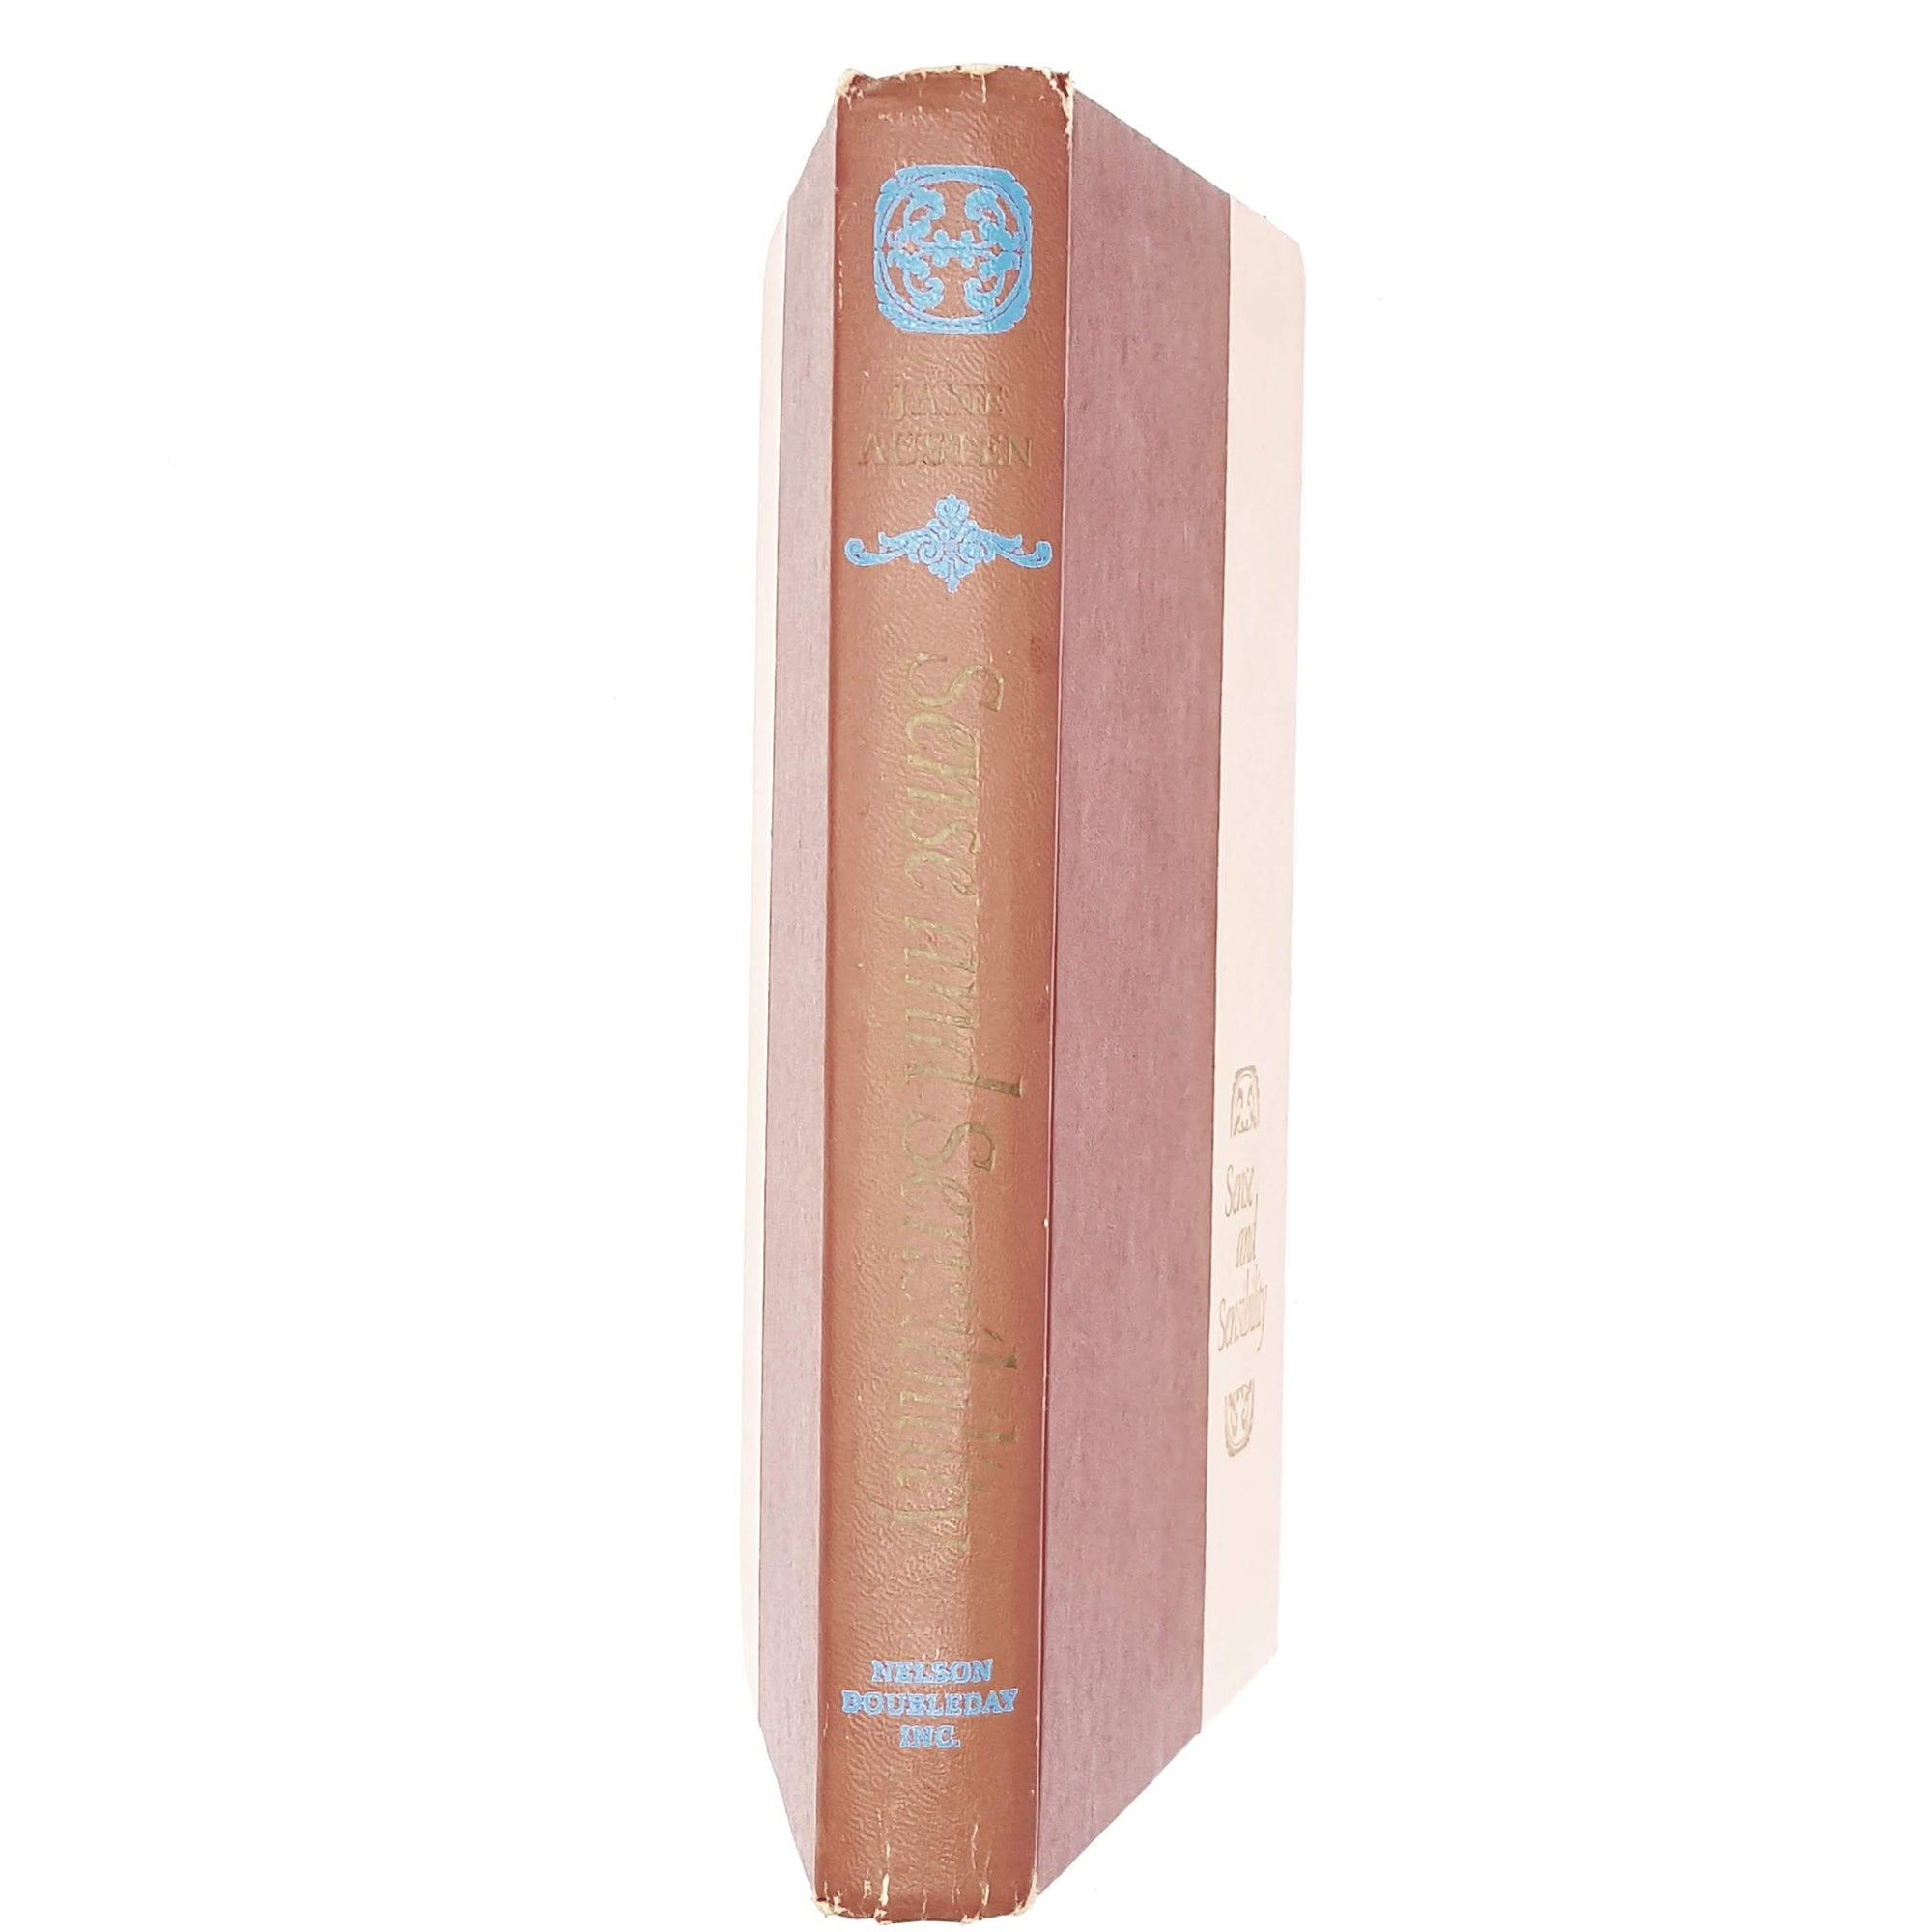 Jane Austen's Sense and Sensibility Nelson Doubleday